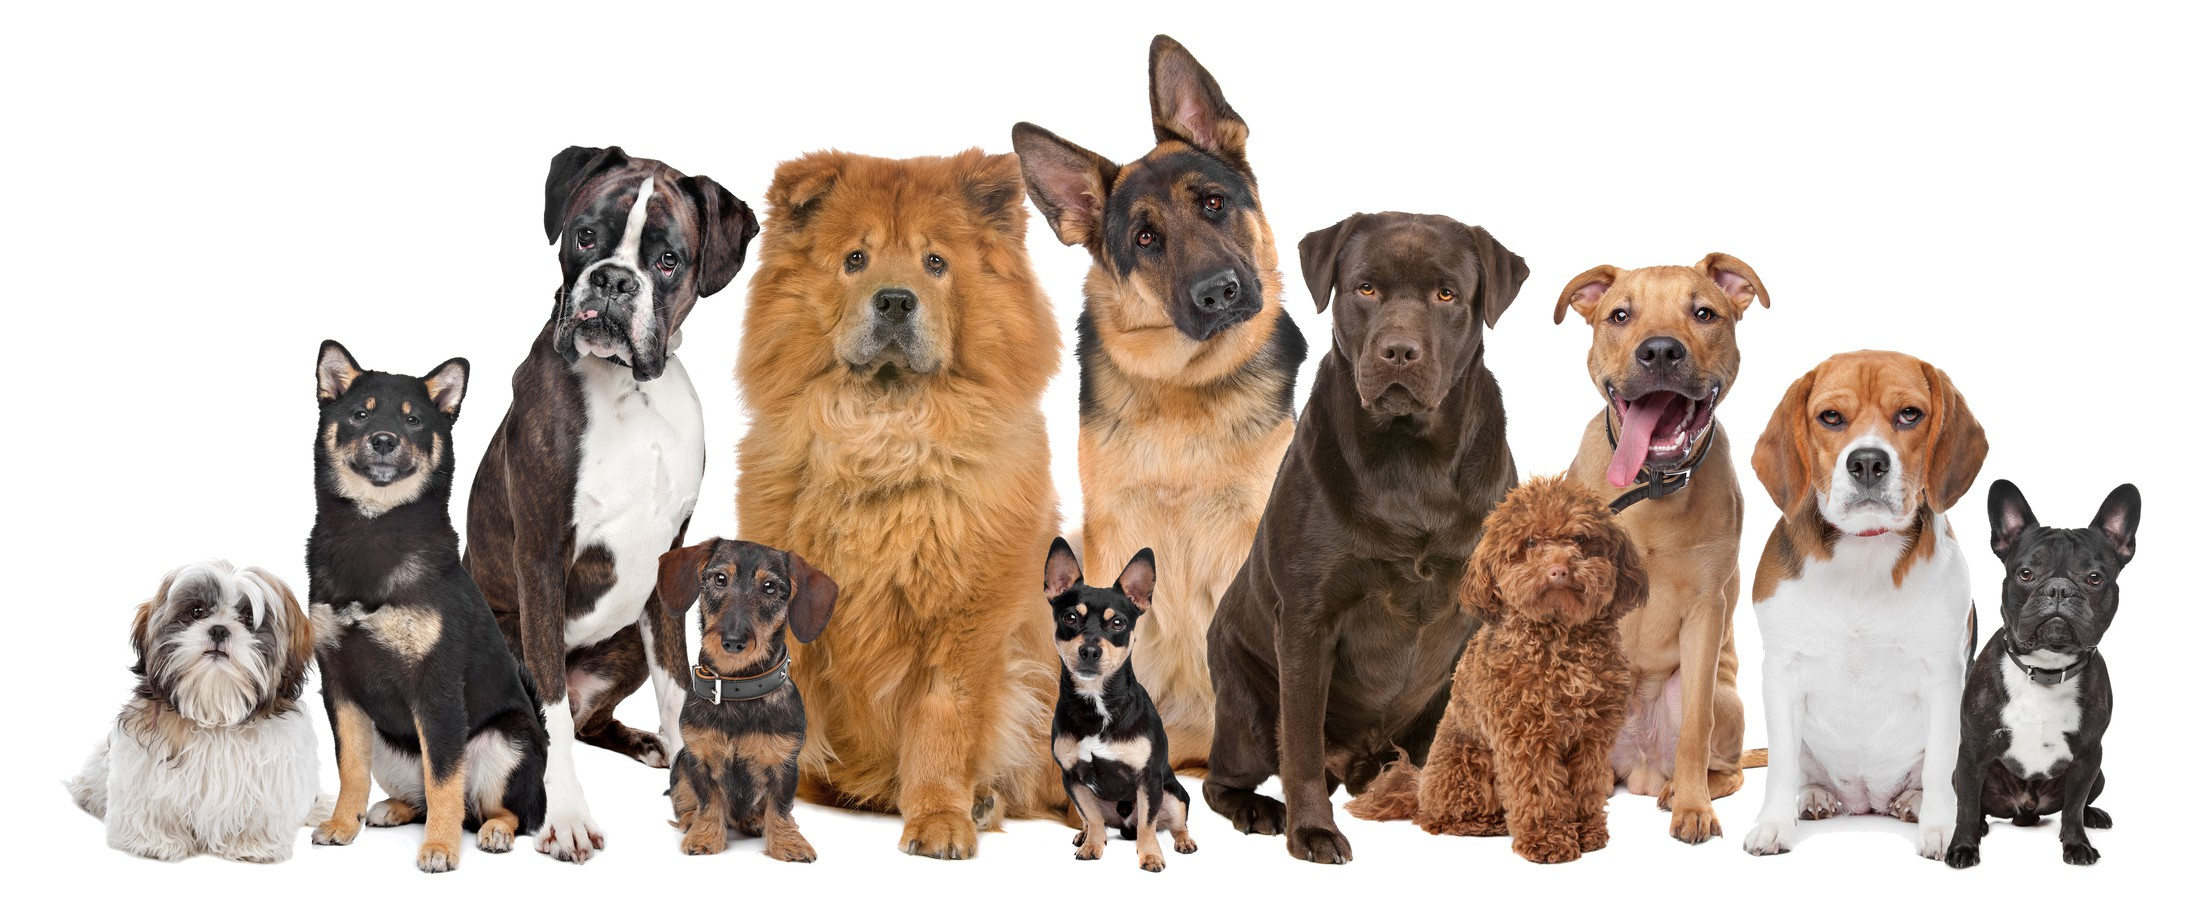 group-of-12-dogs_9889235_m.jpg